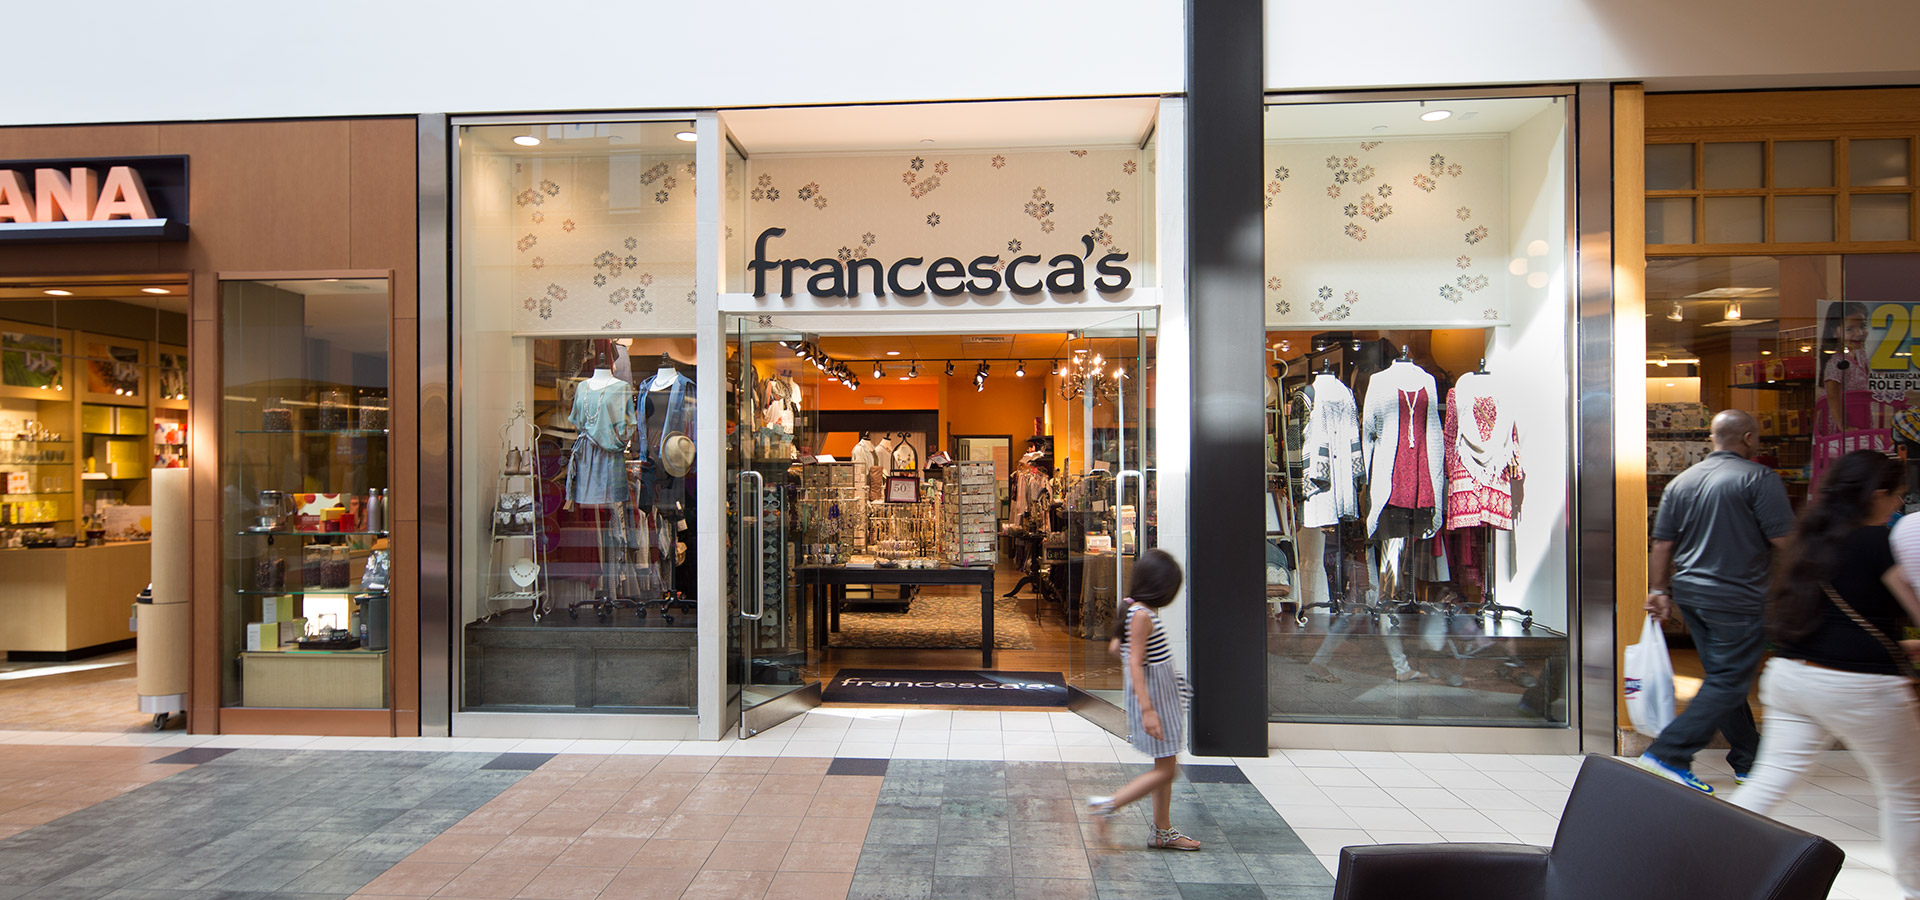 Francescas Near Me In Dulles, Va  Dulles Town Center-3644